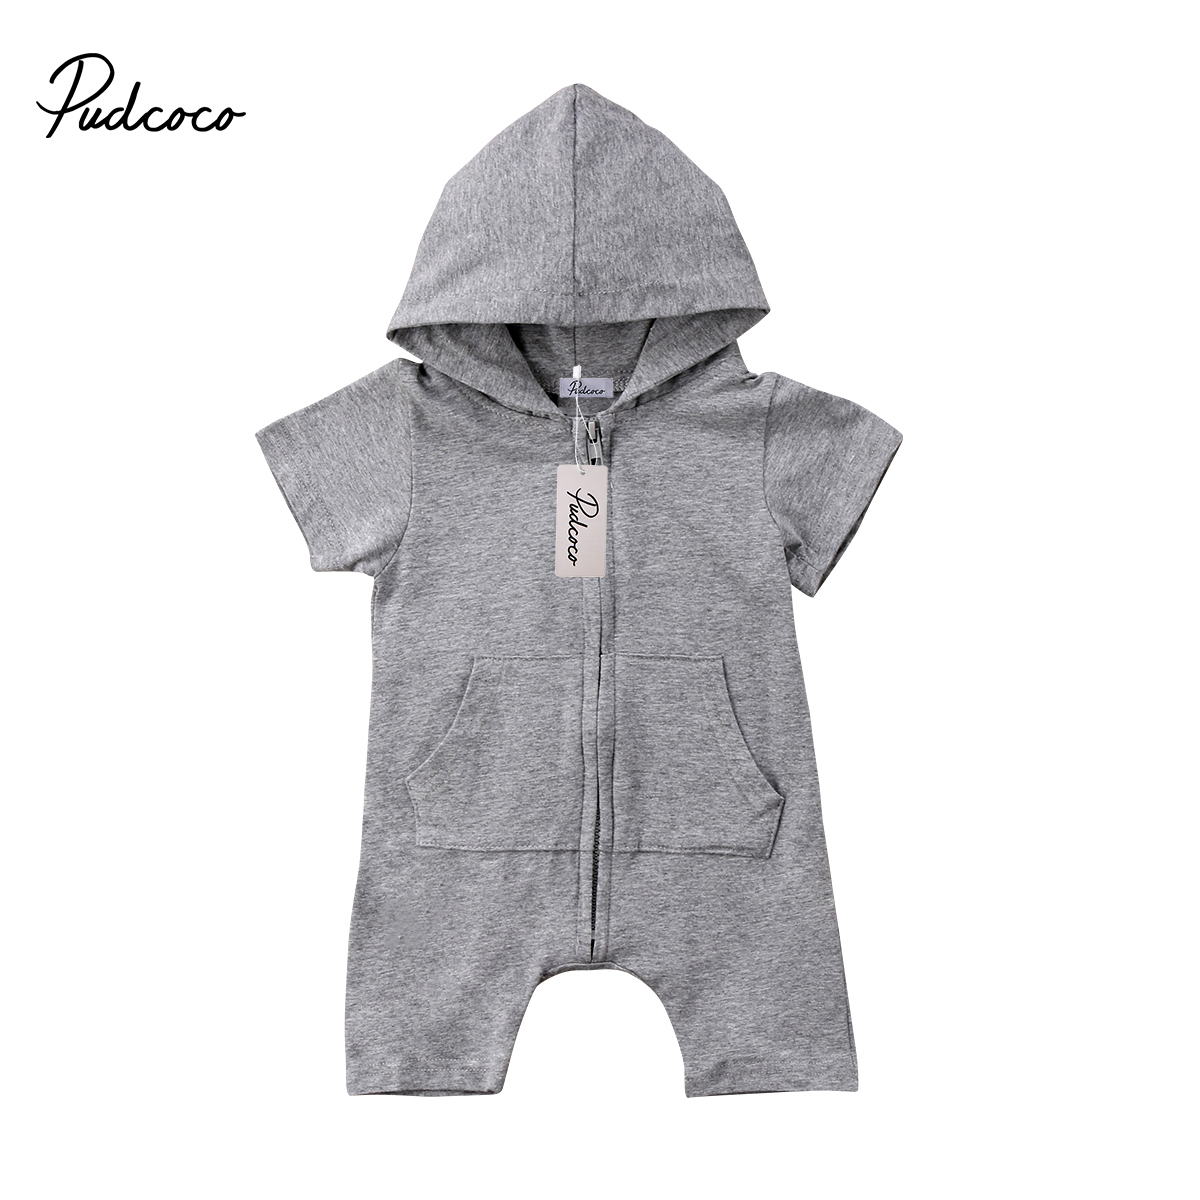 Pudcoco Newborn Toddler Baby Boy Girl Hooded Romper Jumpsuit Playsuit Boys Clothes Outfits toddler baby cactus romper infant girl boy cute cotton clothes rompers jumpsuit playsuit outfits